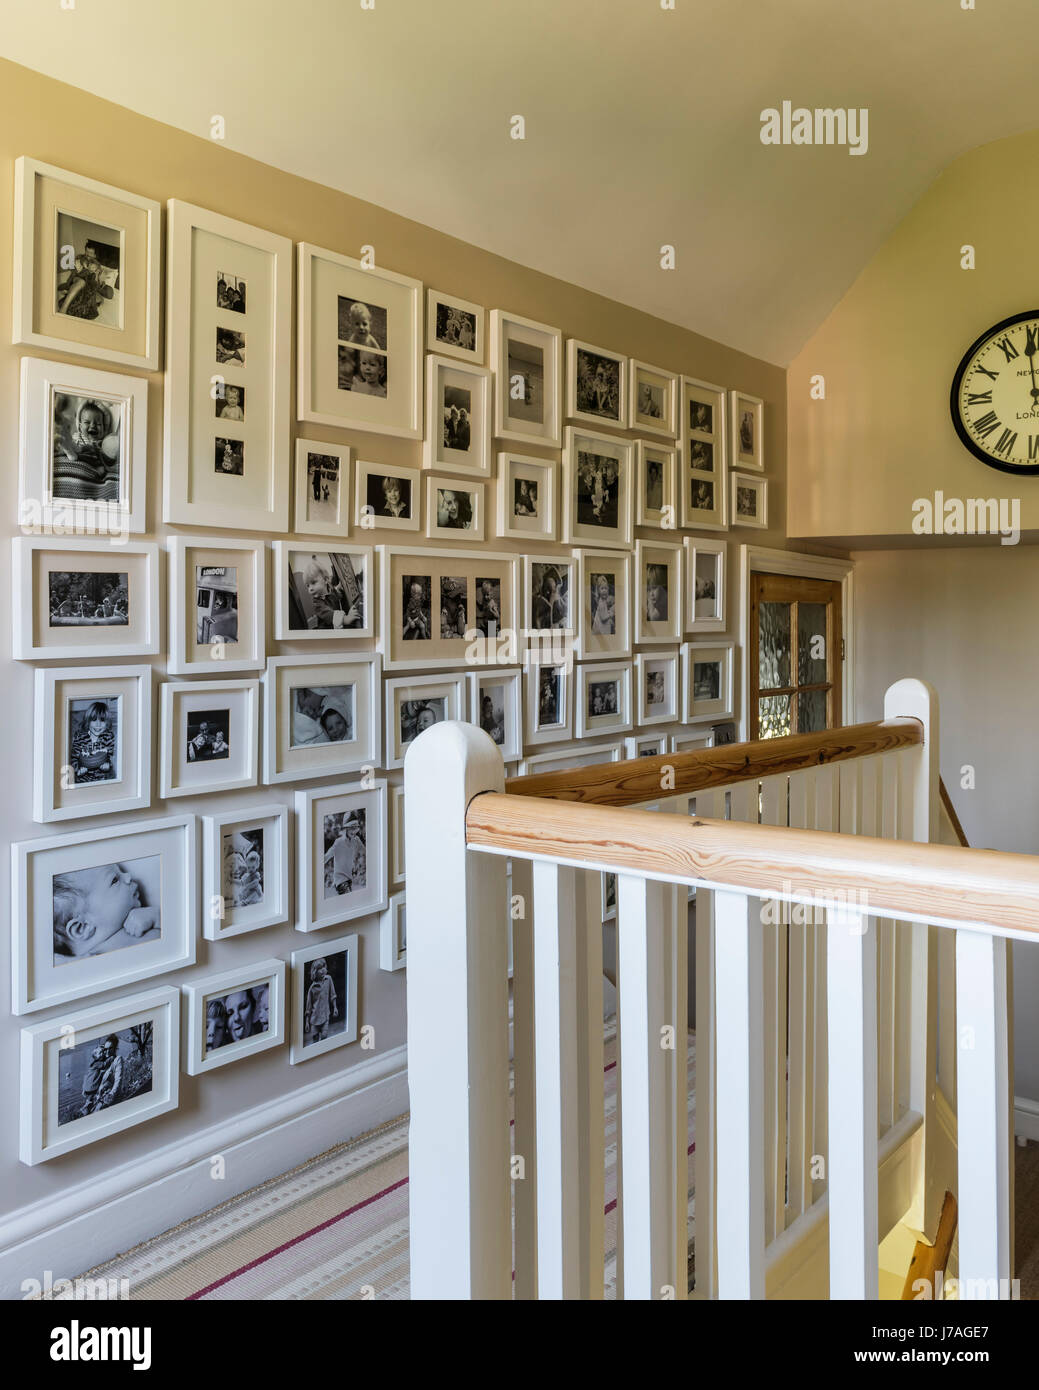 Framed Black And White Family Photography Along Wall On Staircase